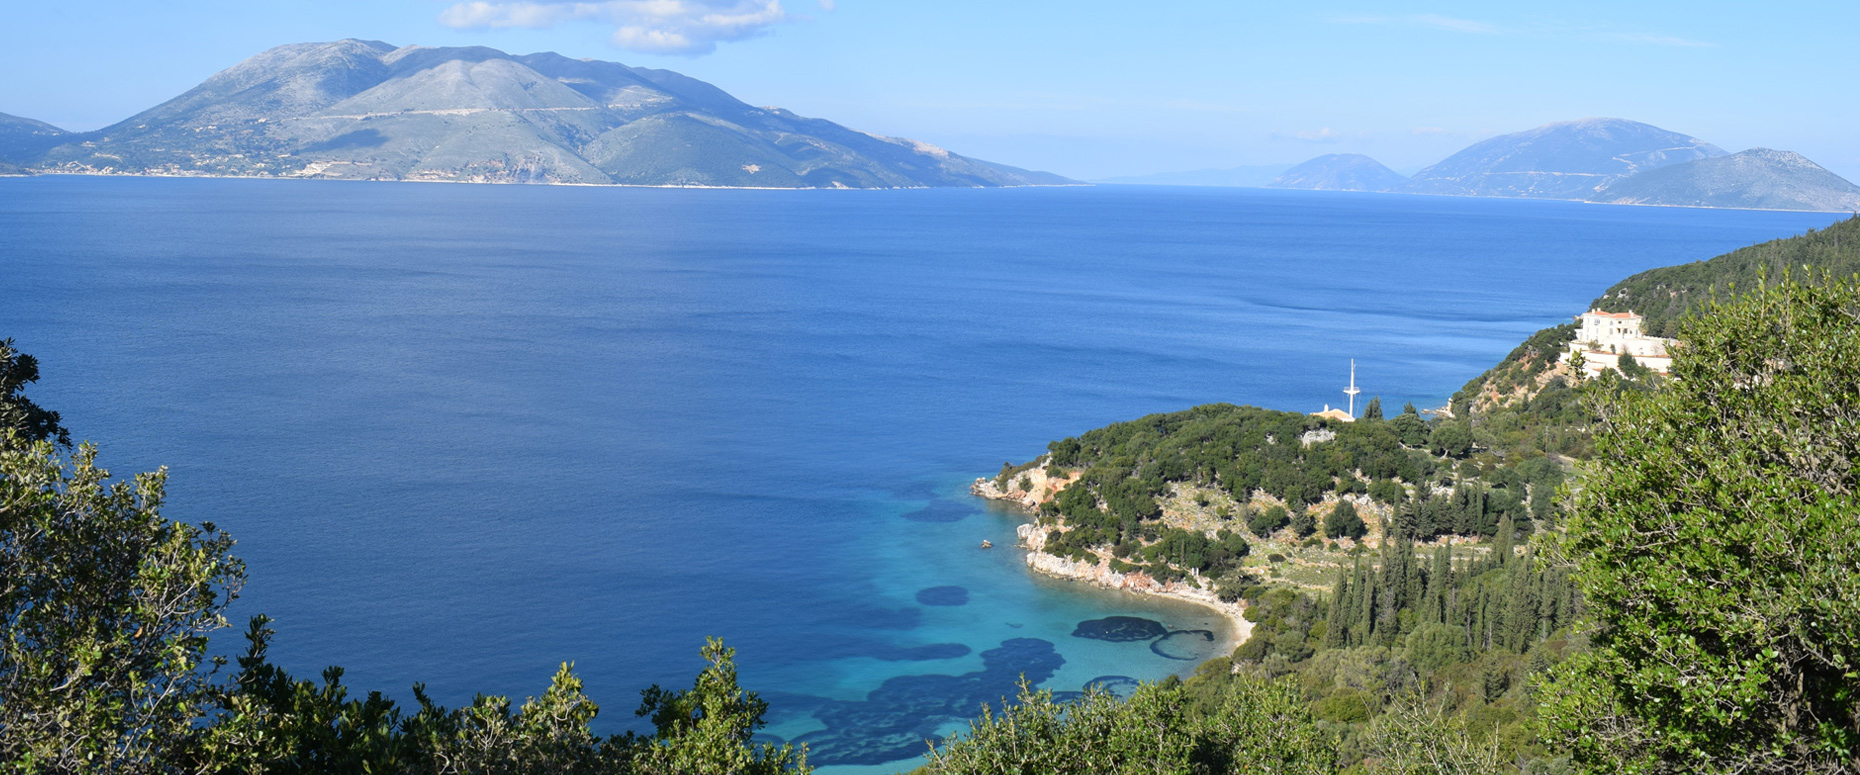 sami_kefalonia_greece_01